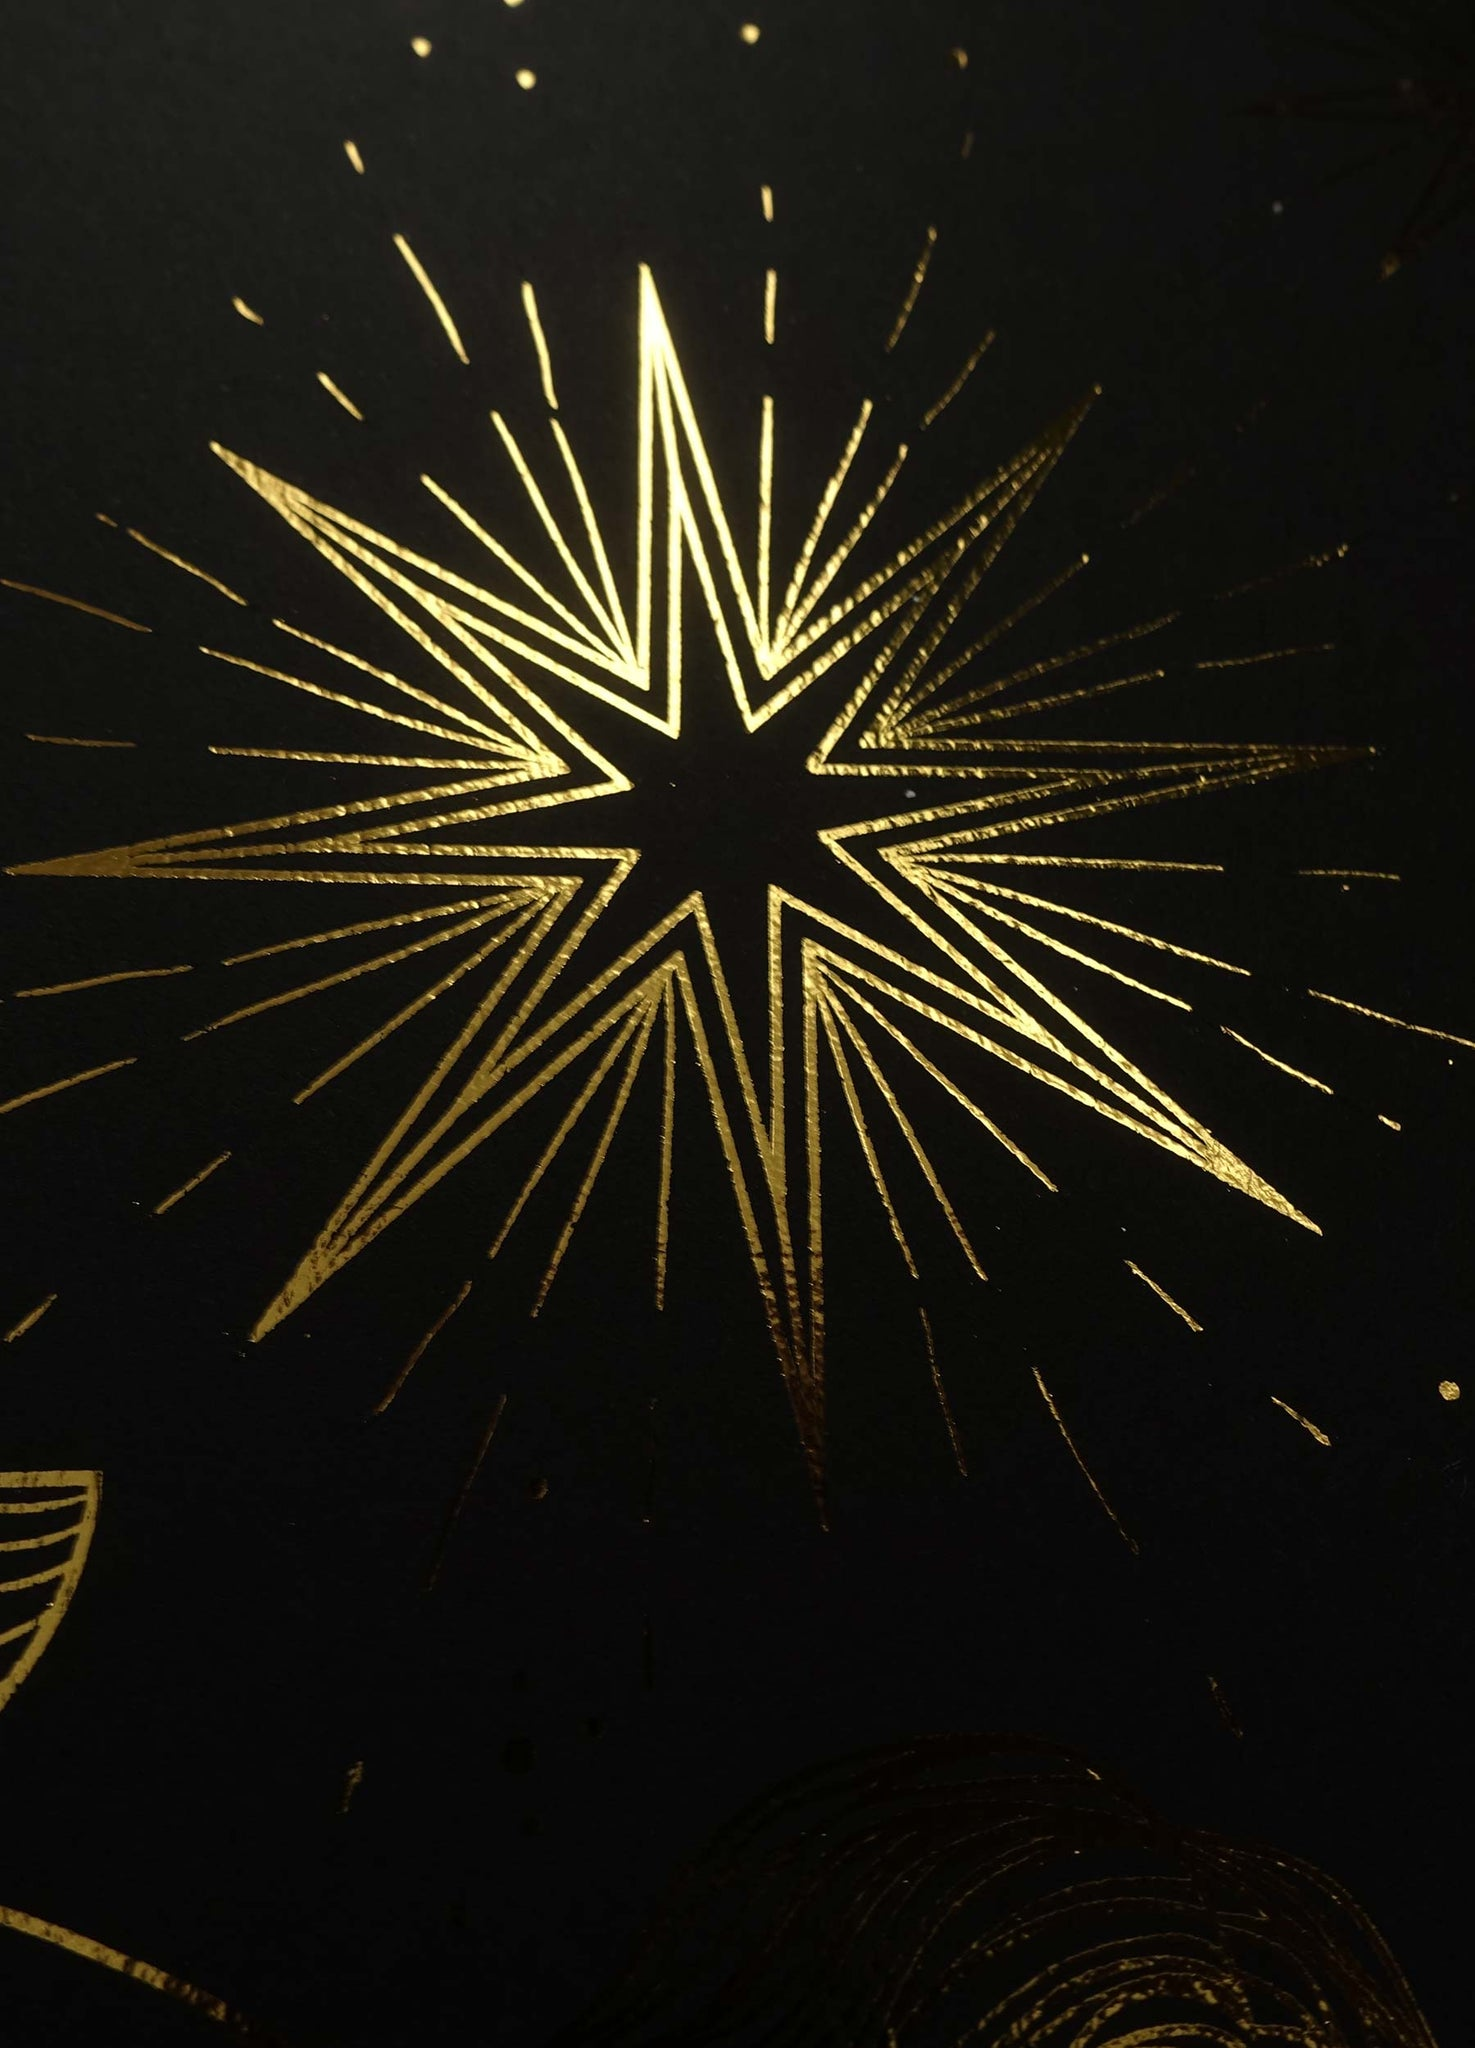 The Star Tarot gold foil art print on black paper by Cocorrina & Co design studio and shop